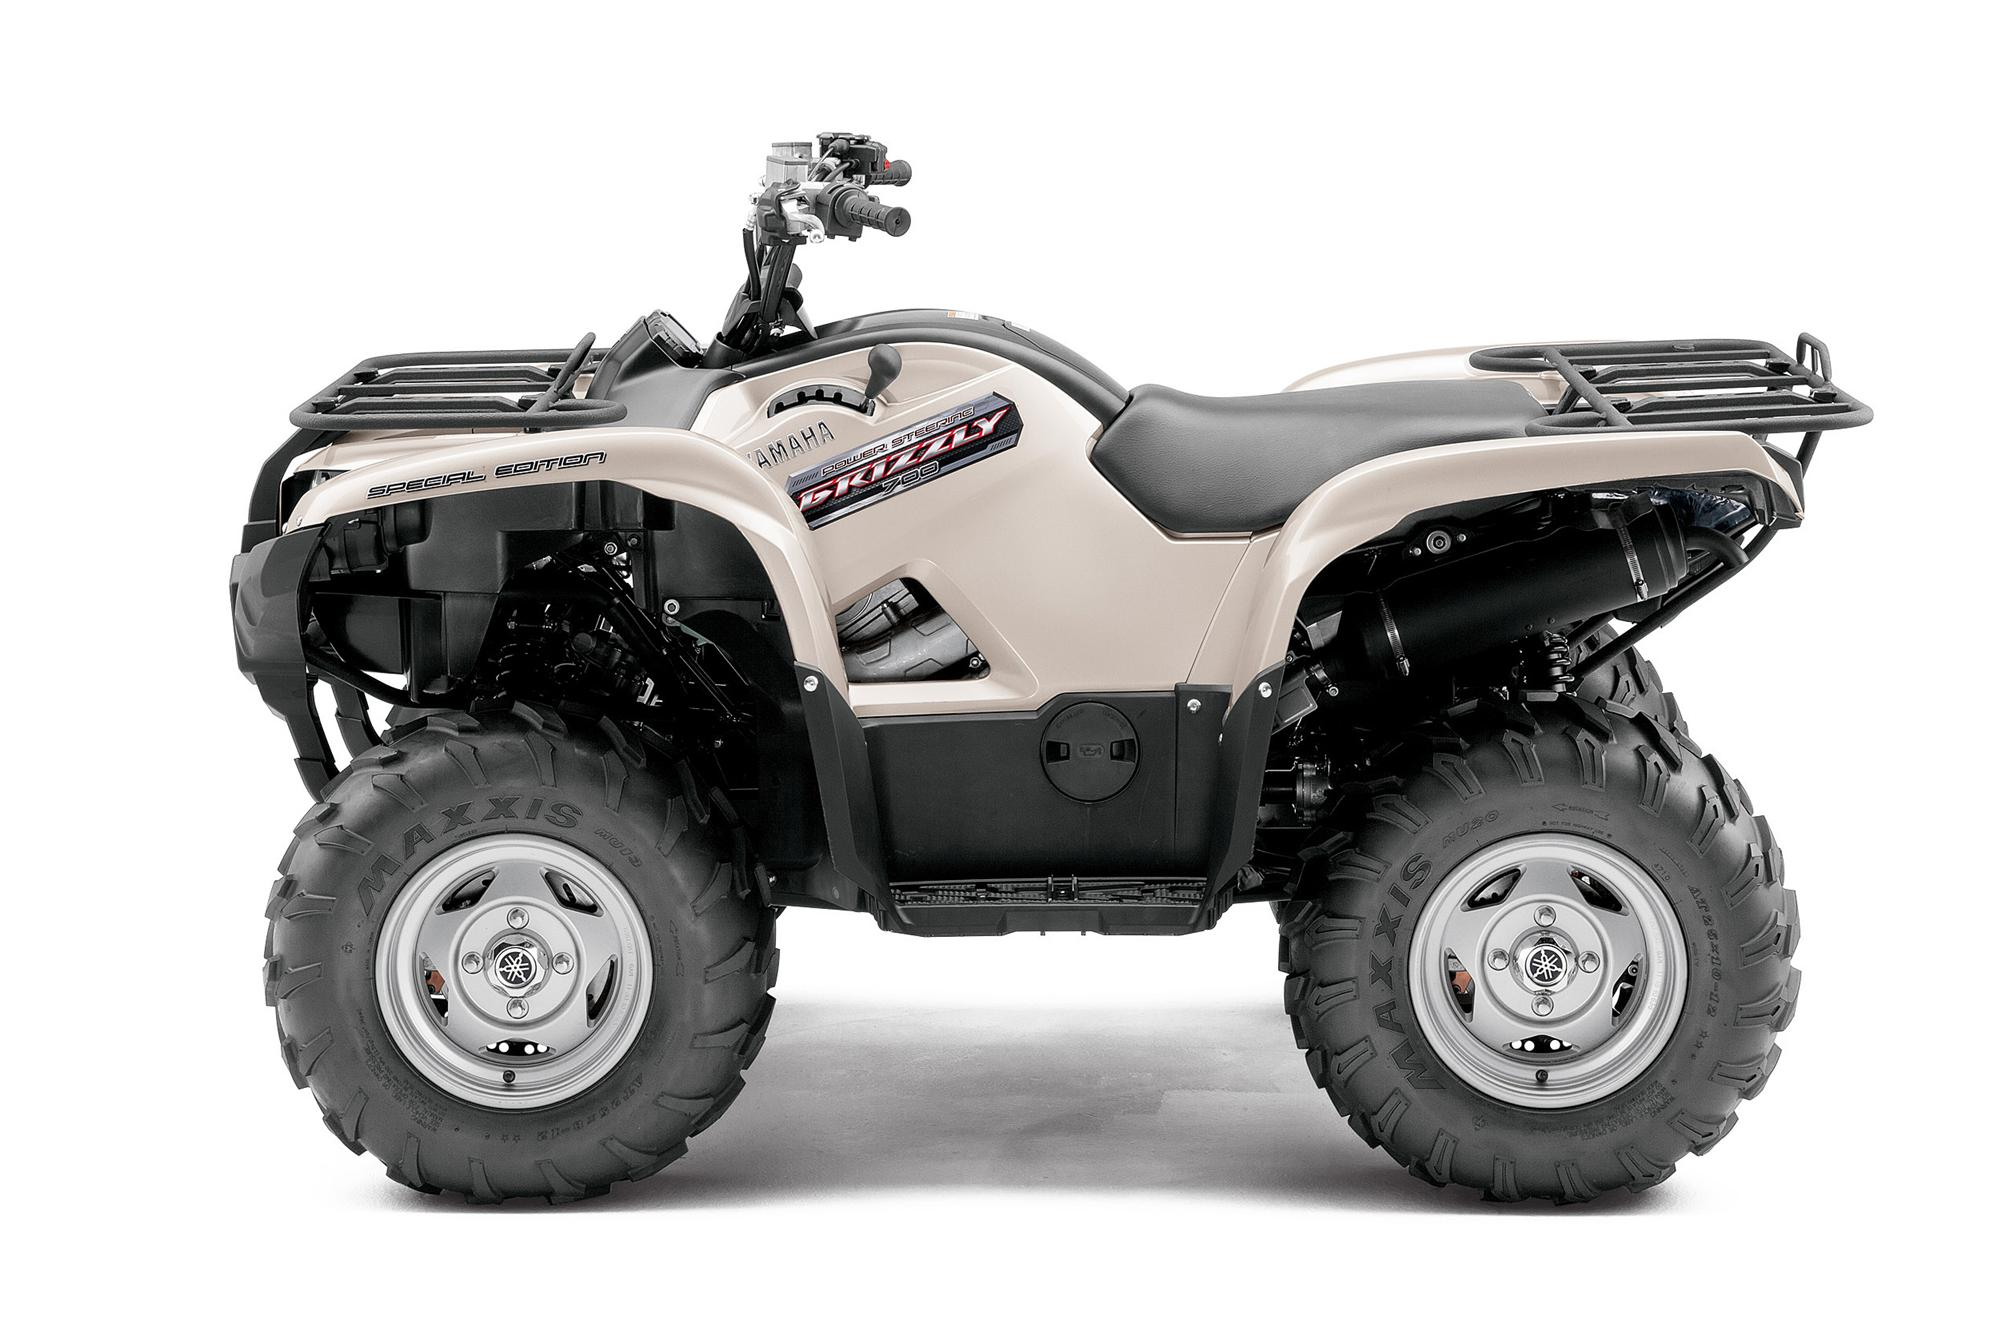 Yamaha Grizzly 700 Fi Wiring Diagram Solutions Eps Automatic 4x4 Special Edition Specs 2018 Engine